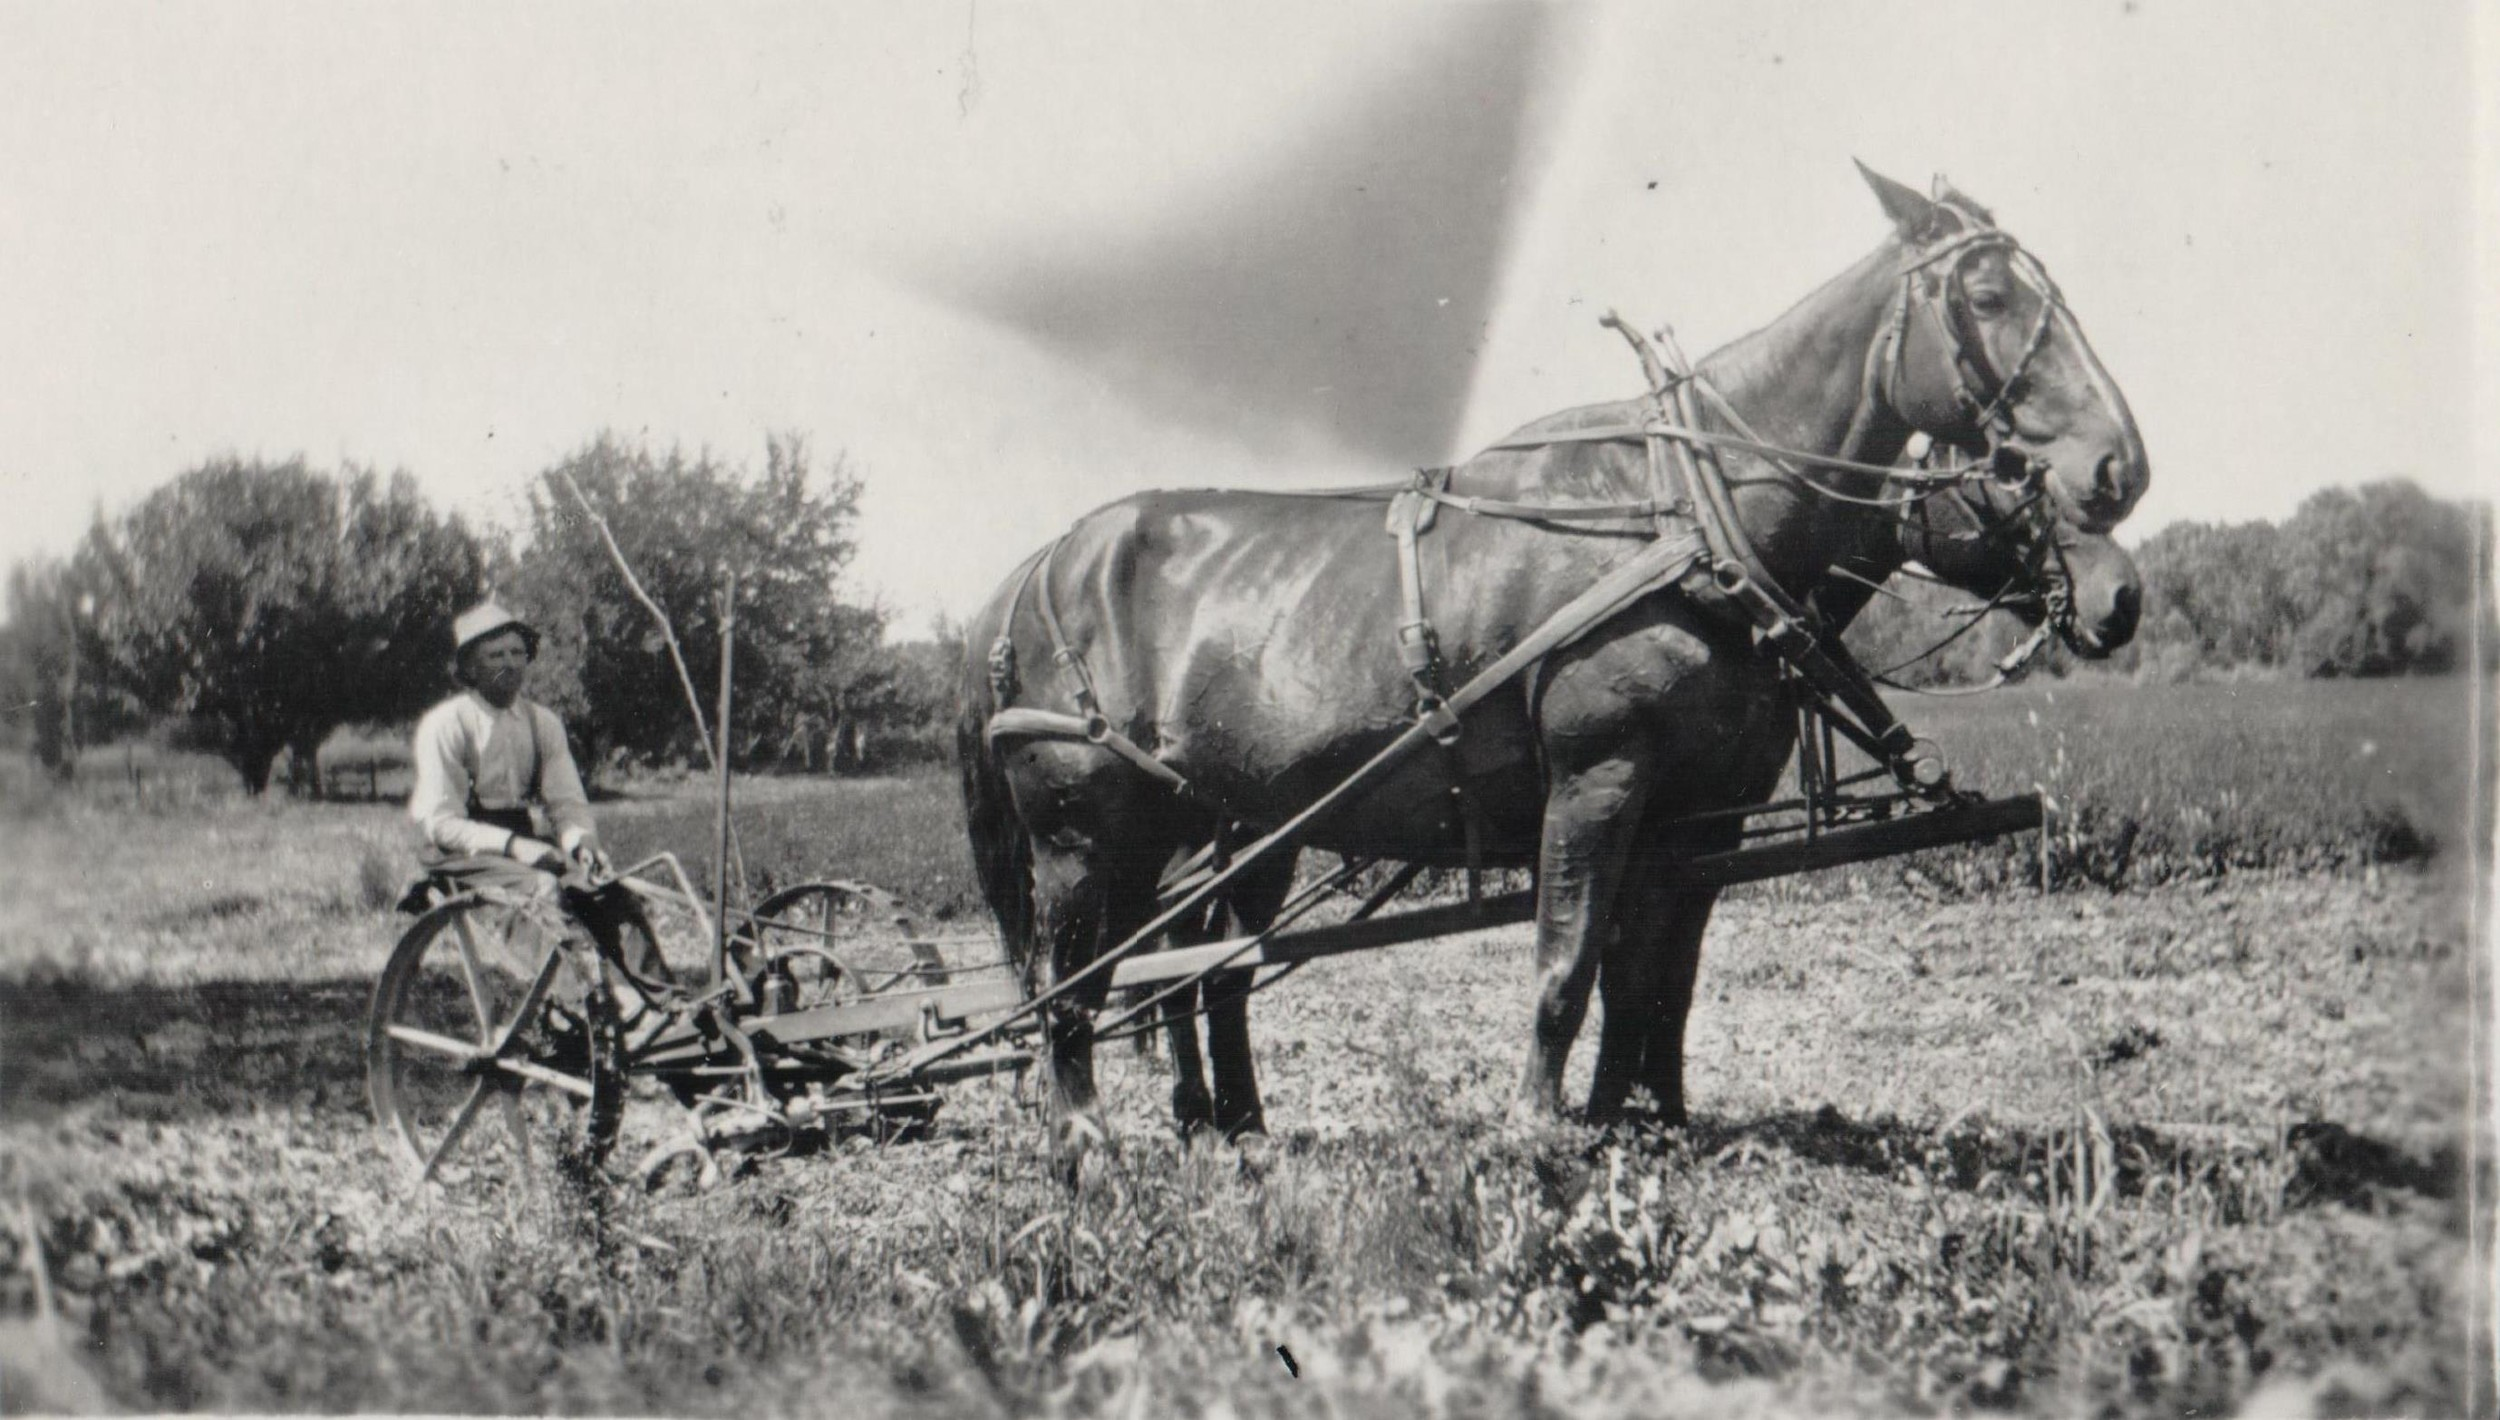 Abe Howarth Jr. on his farm on Plum Creek, south of Wolhurst. Date unknown.